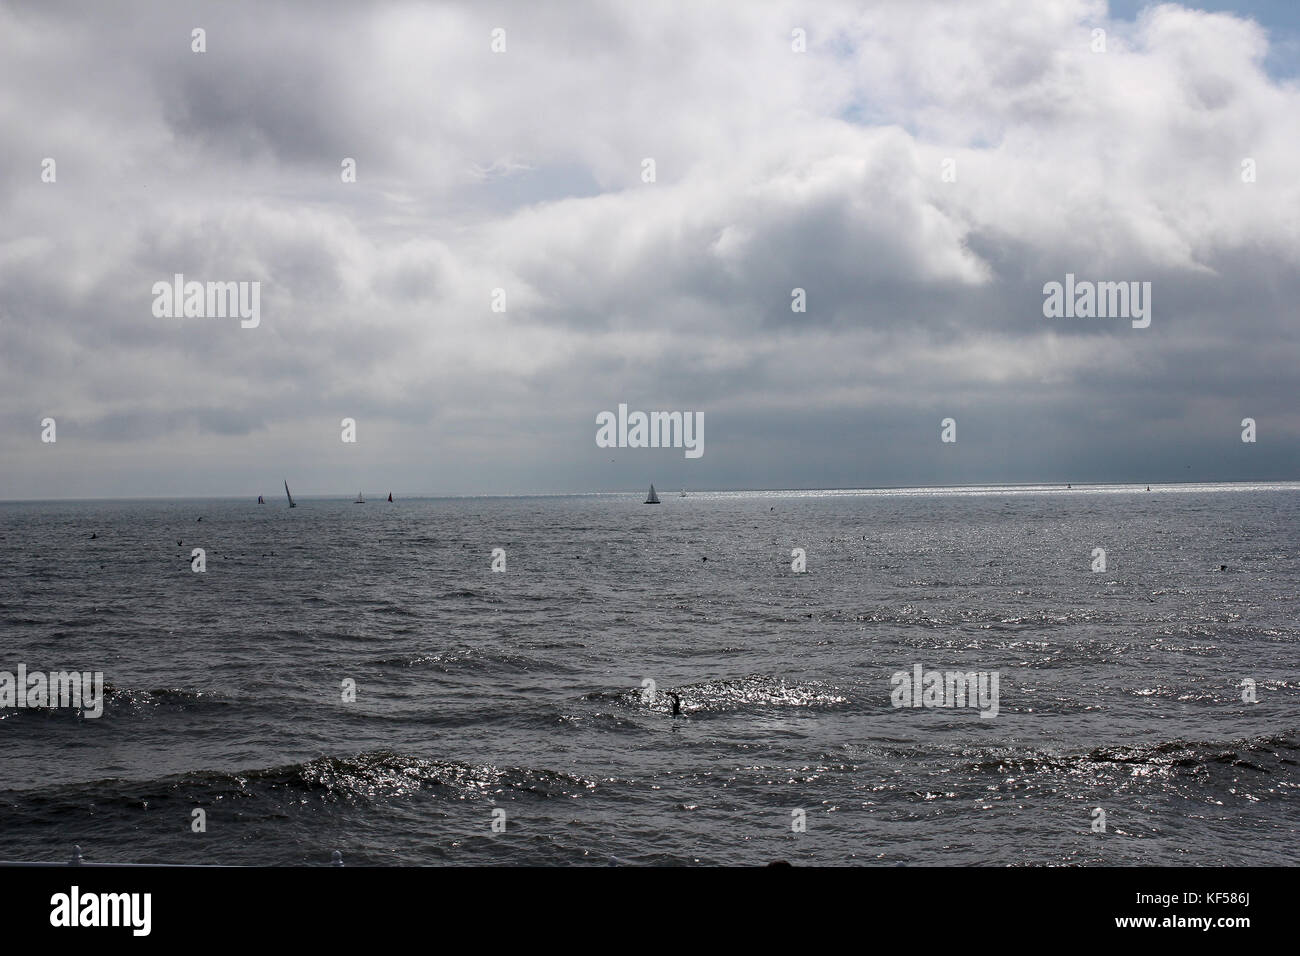 Dramatic sky over the coast with sailing boats and birds - Stock Image